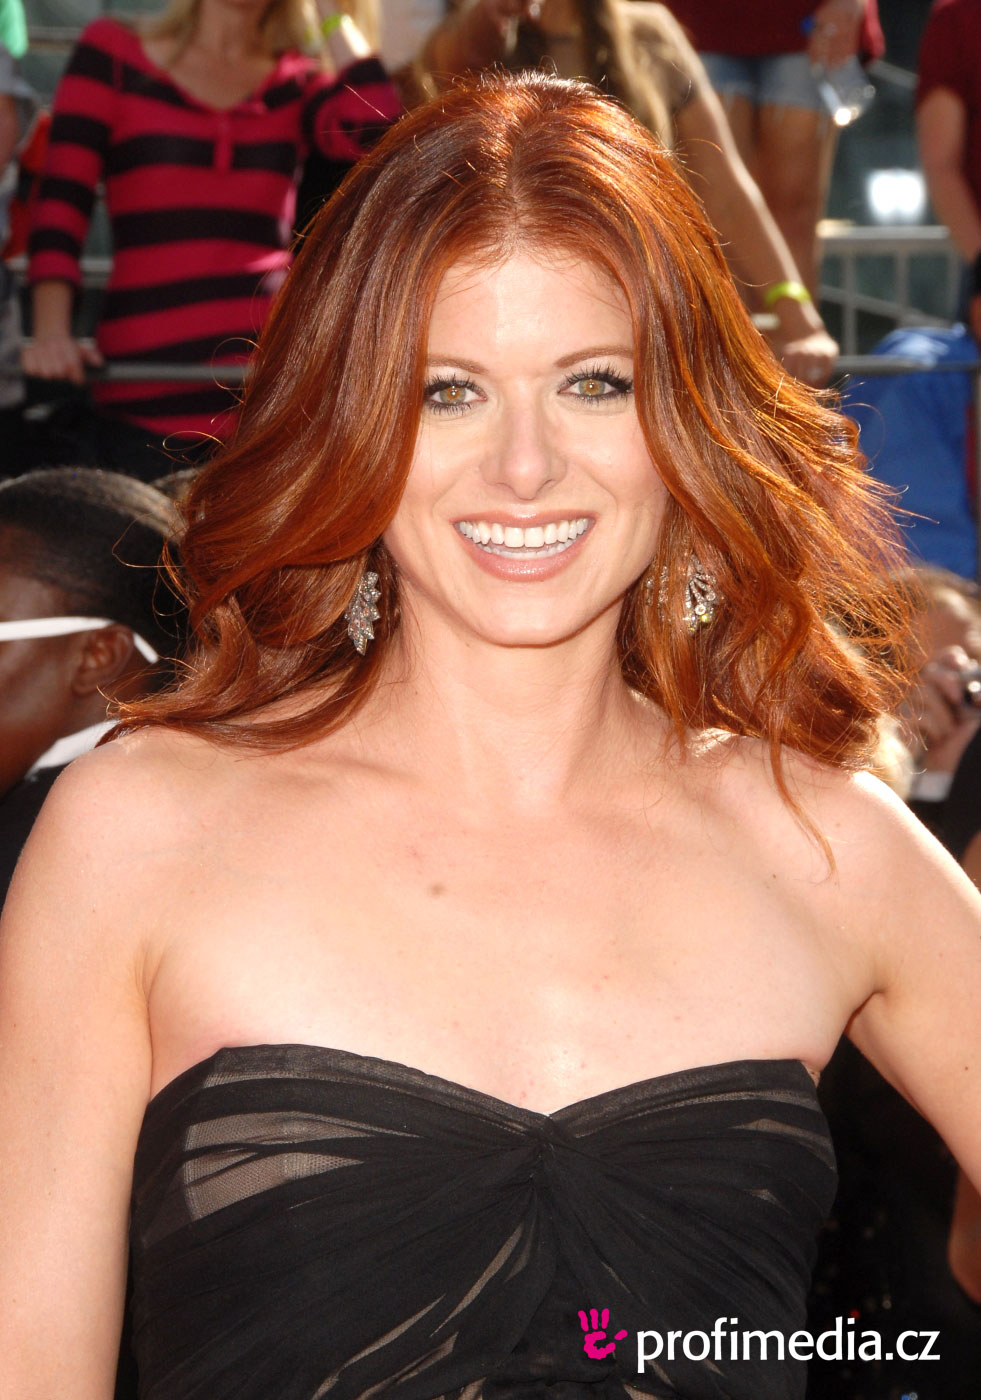 Debra Messing - Wallpaper